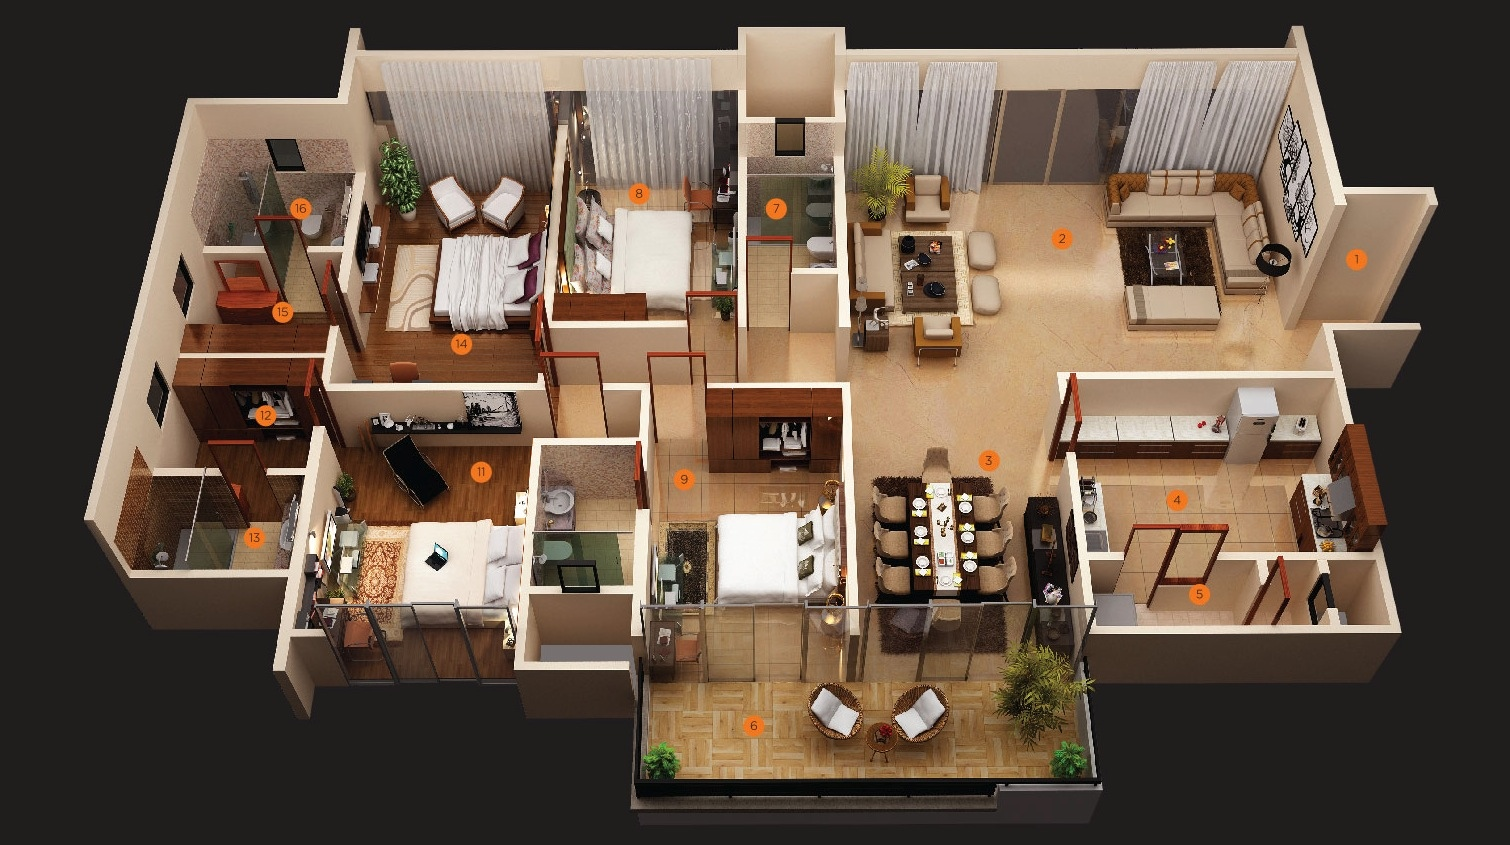 3d House Plans 3d house plans inspiration screenshot 4 Bedroom Apartmenthouse Plans